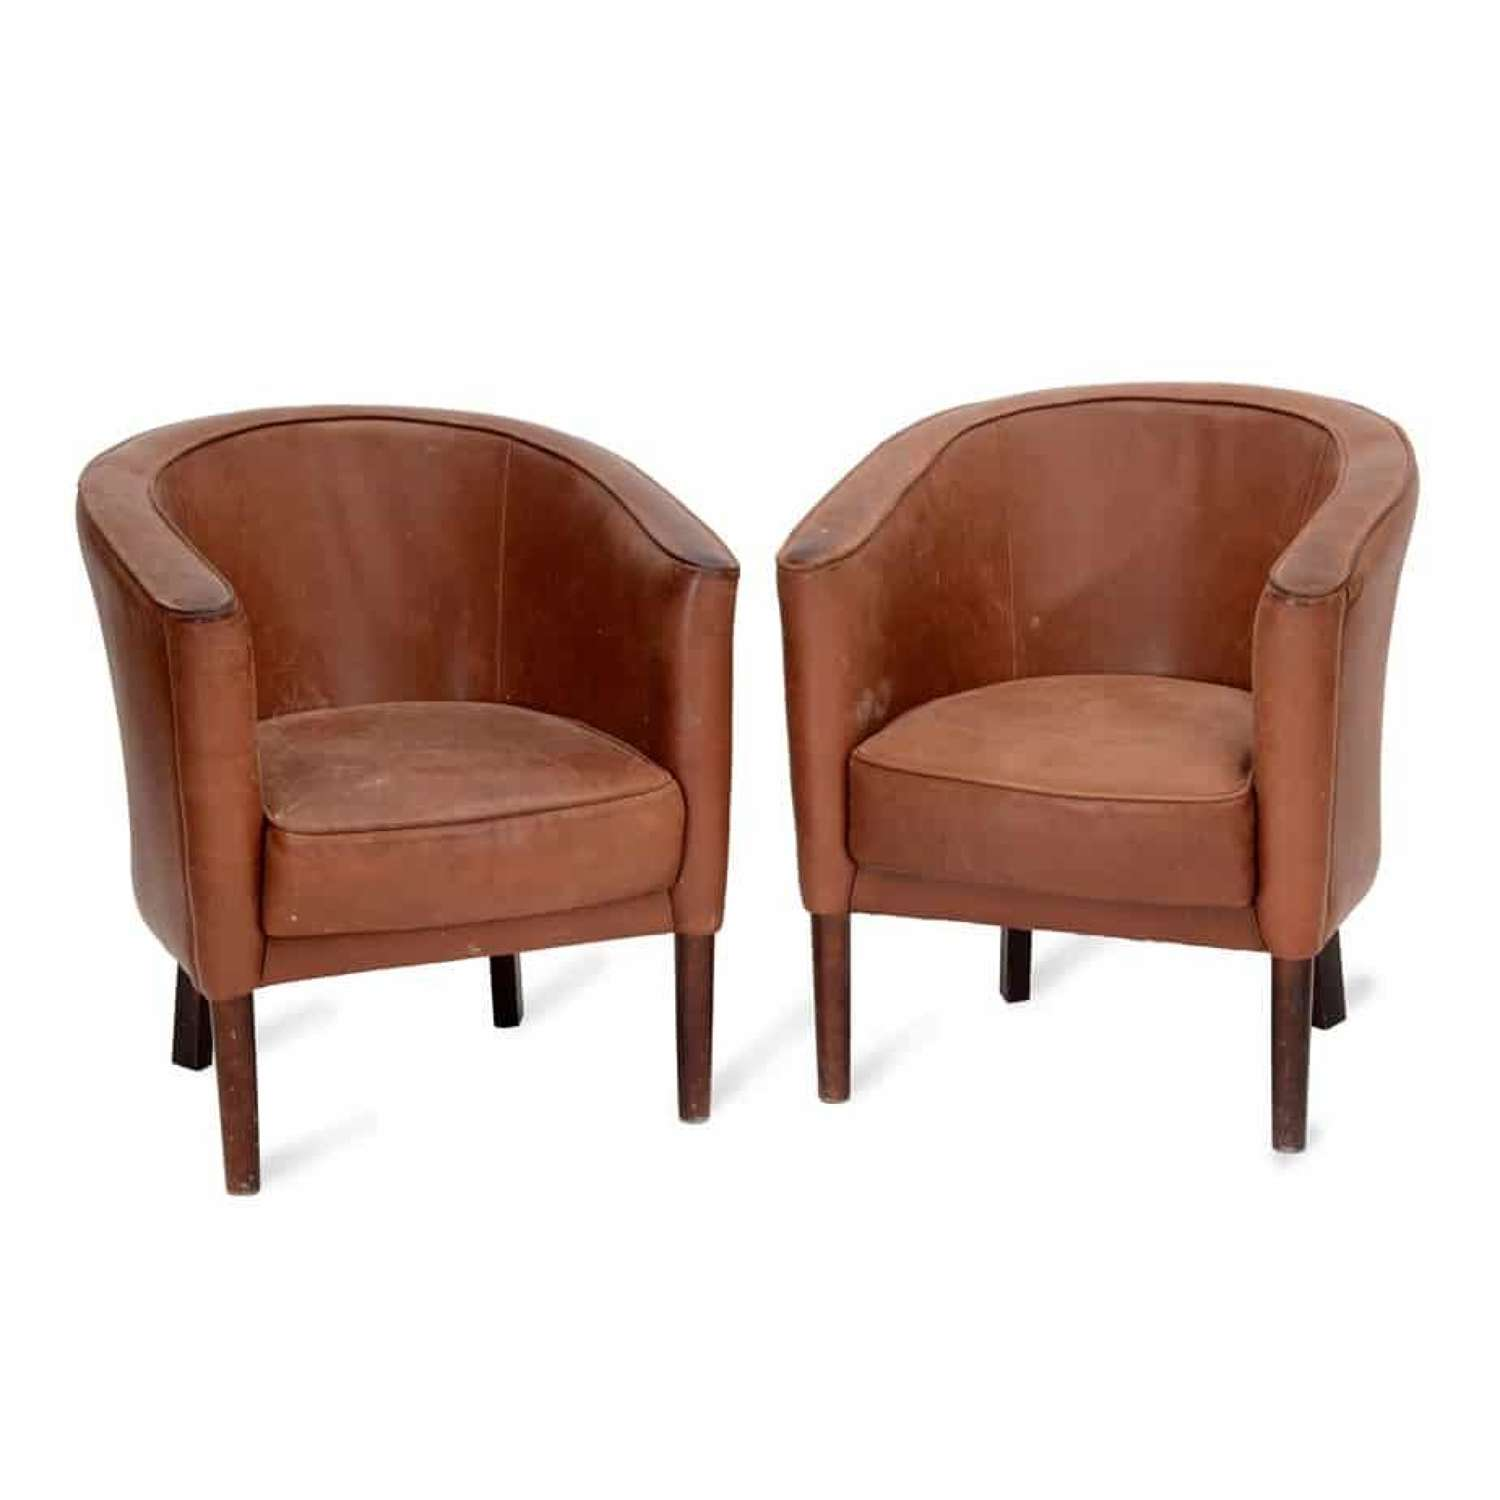 A pair of tan leather tub chairs by Heal's